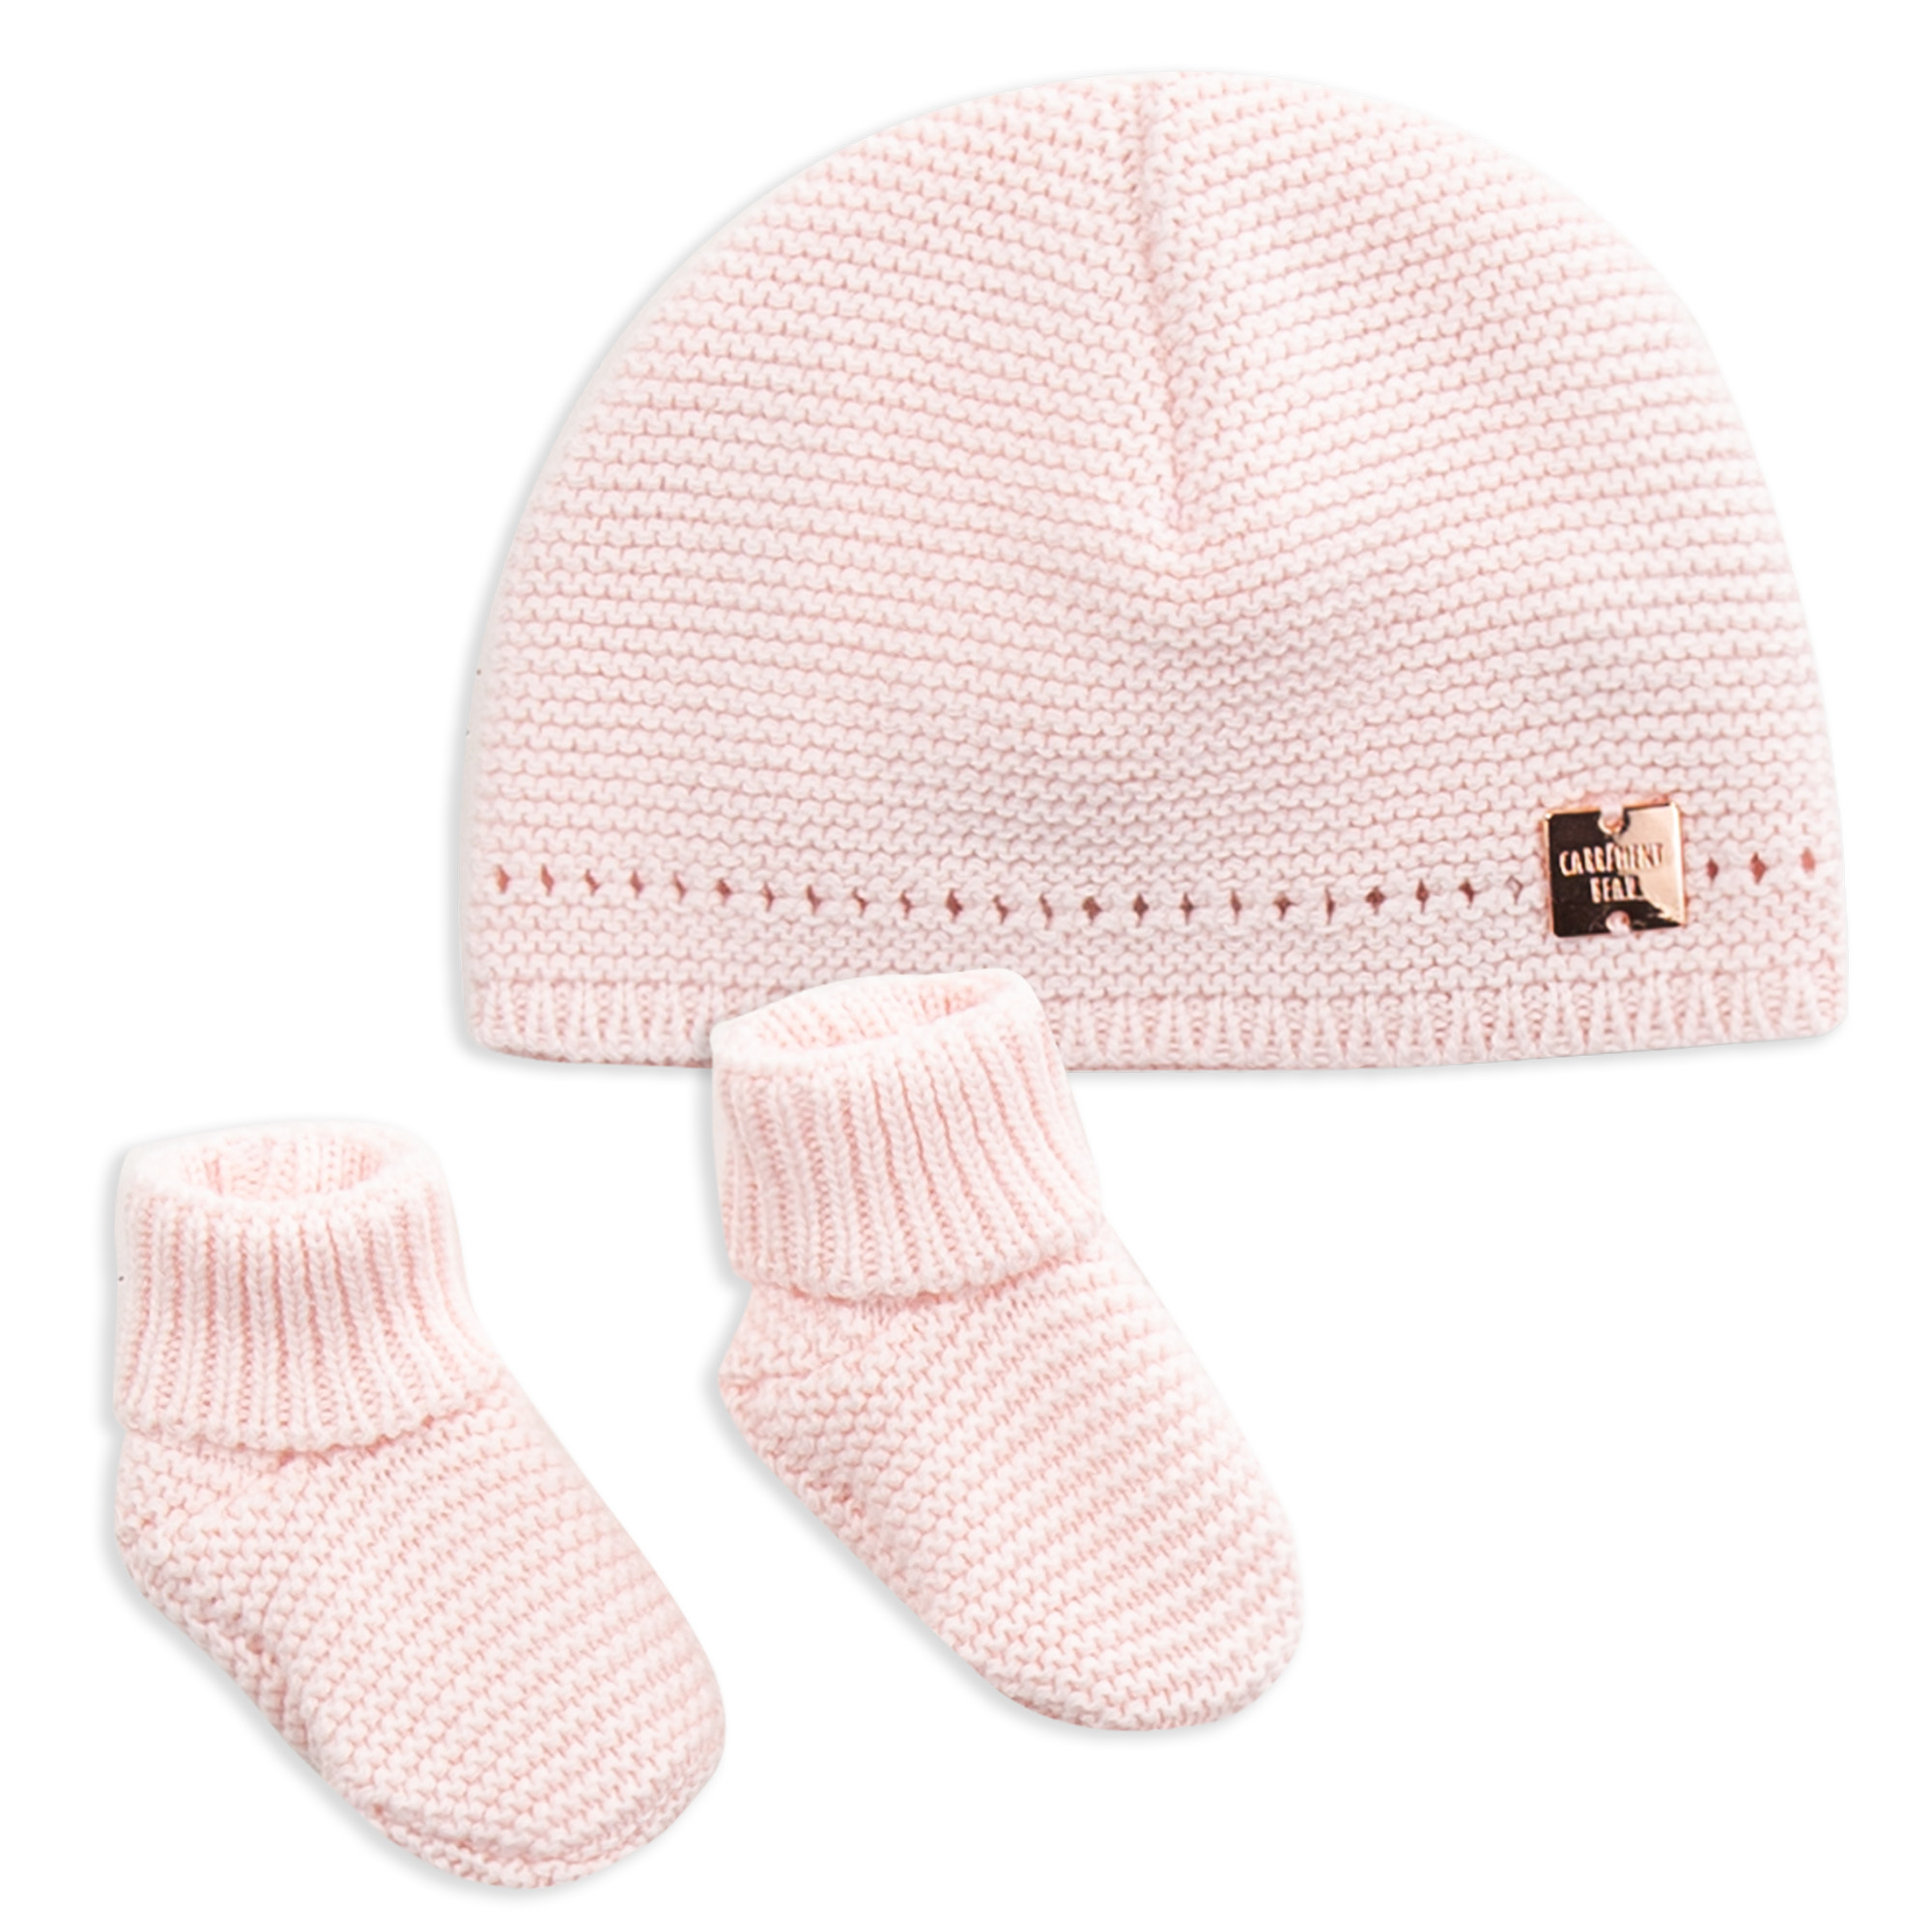 PULL ON HAT+SLIPPERS CARREMENT BEAU for GIRL